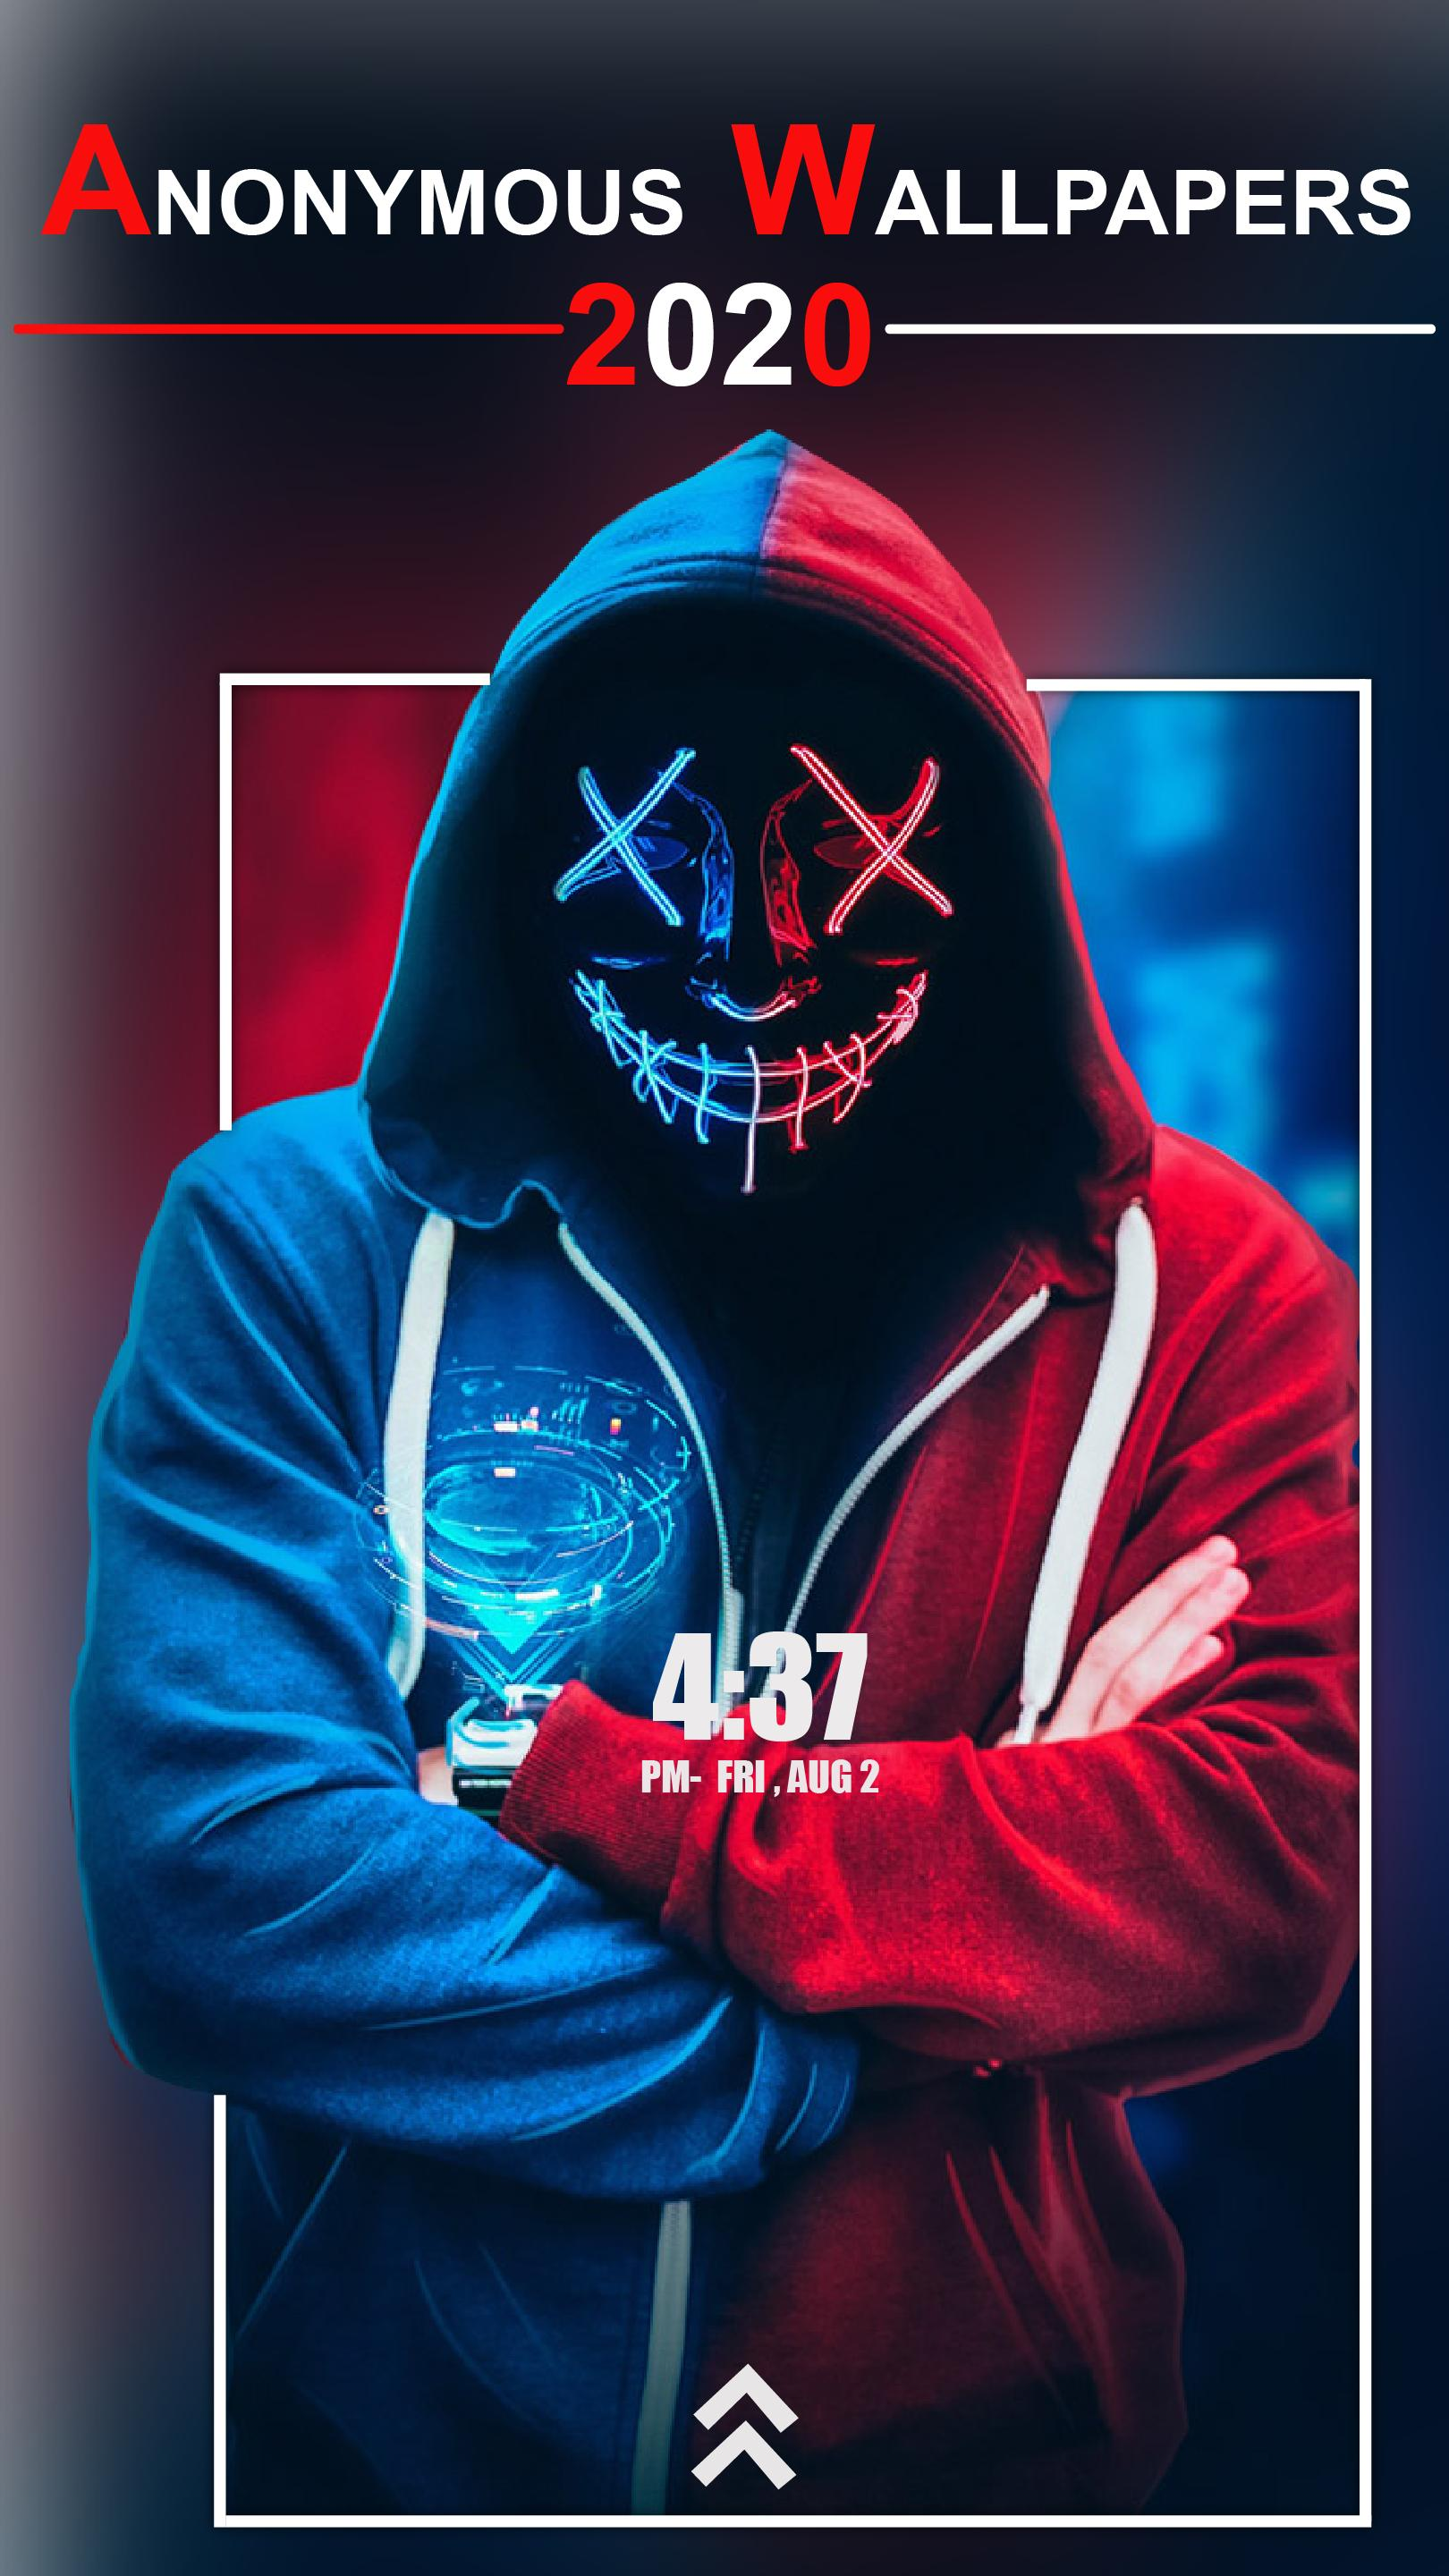 Anonymous Wallpapers Hd Hackers Wallpapers 4k For Android Apk Download